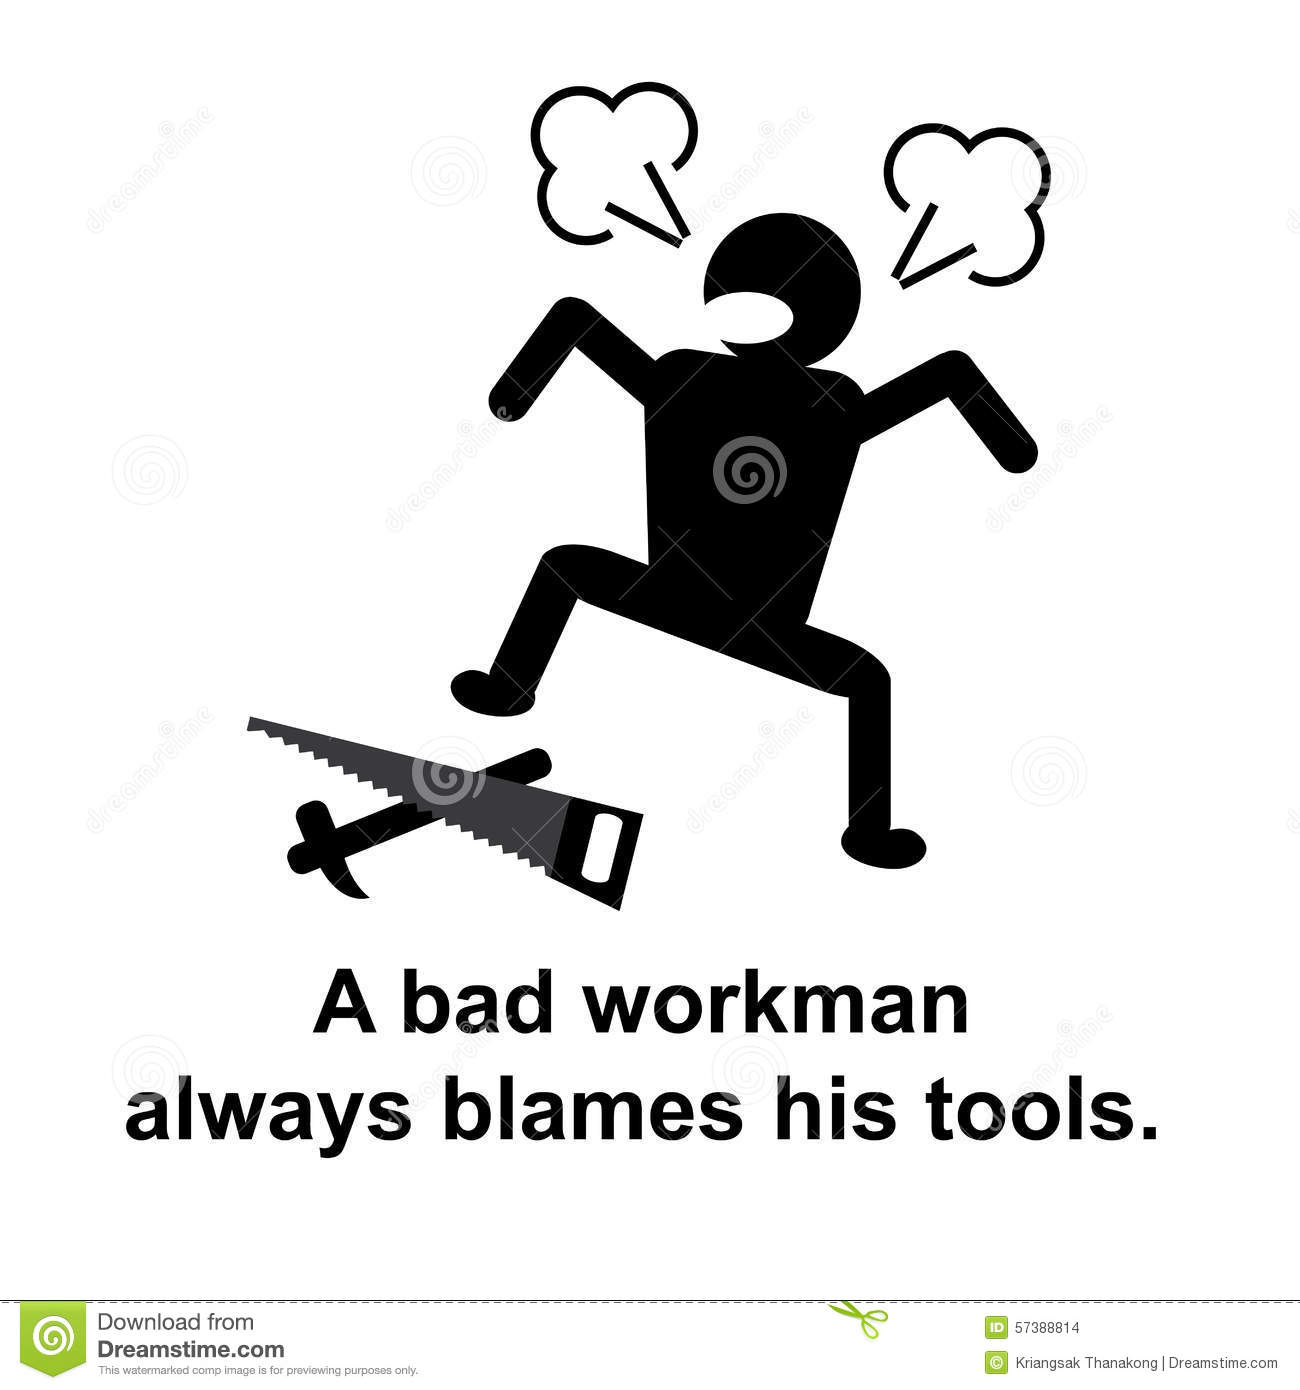 a bad workman blames his tools essay